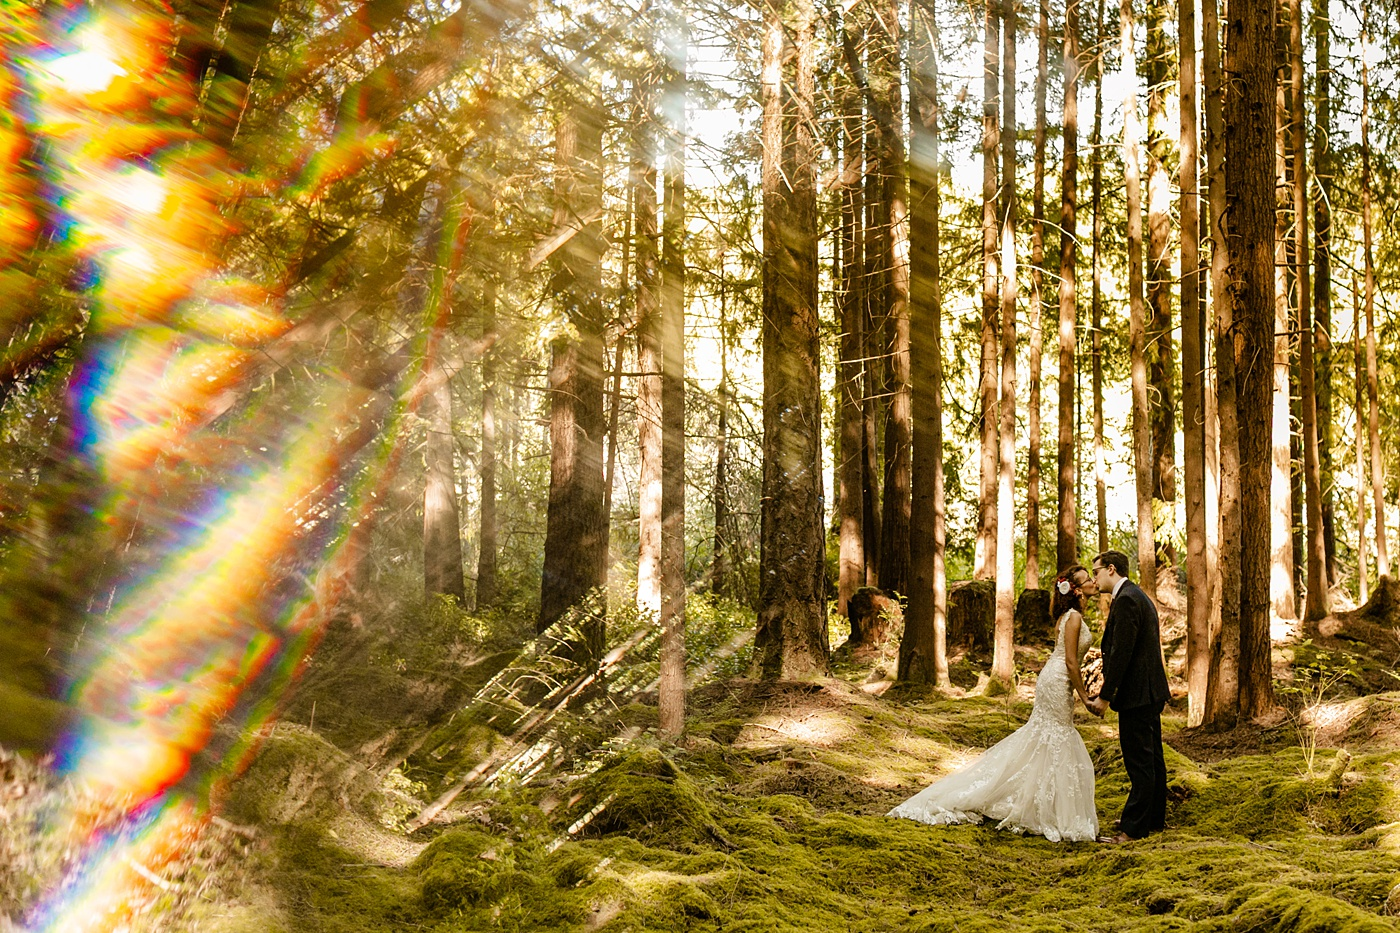 the emerald forest wedding photographer tminspired photography, redmond washington, How To Choose The Best Wedding Vendors